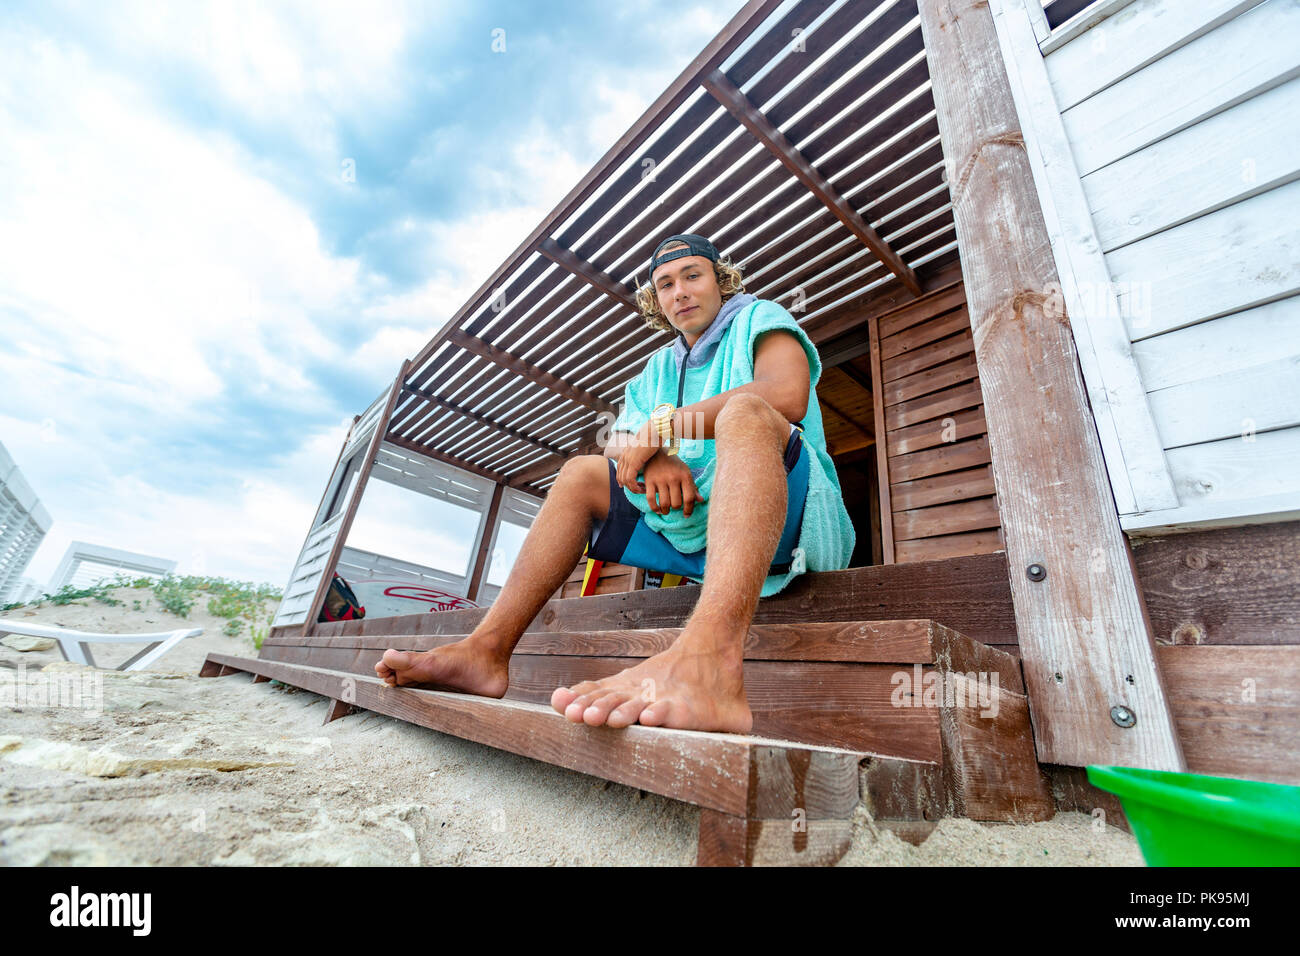 The surfer sits on the terrace on the beach looking out into the distance. - Stock Image